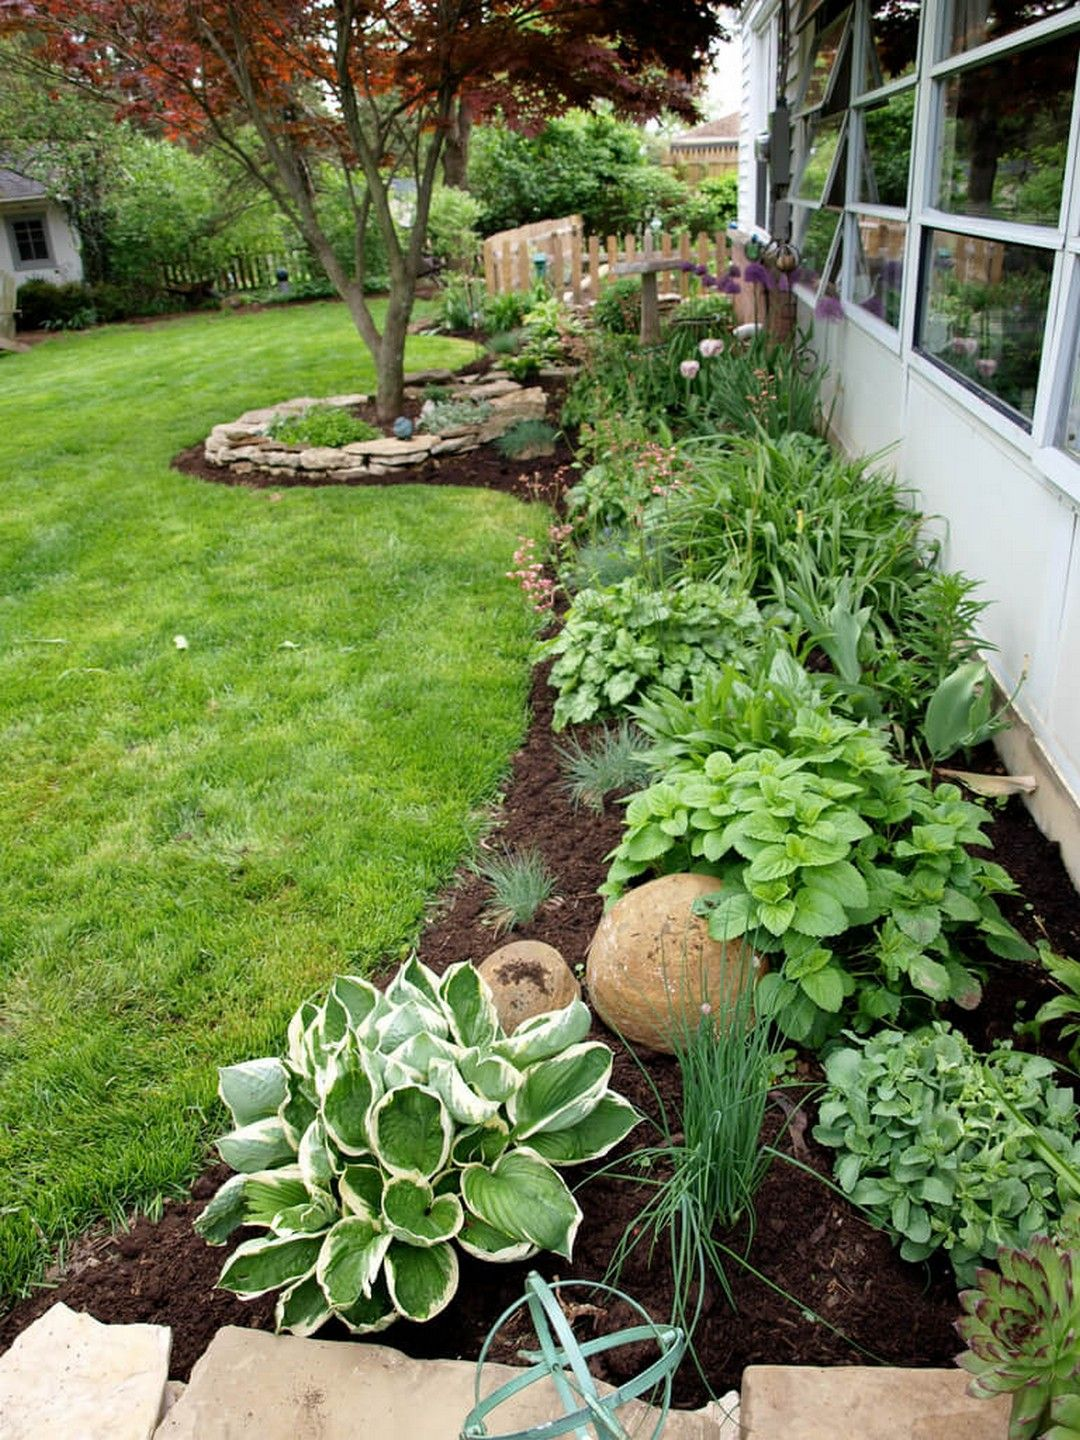 Farmhouse Landscaping Front Yard Ideas | Farmhouse ... on Farmhouse Yard Ideas id=42917